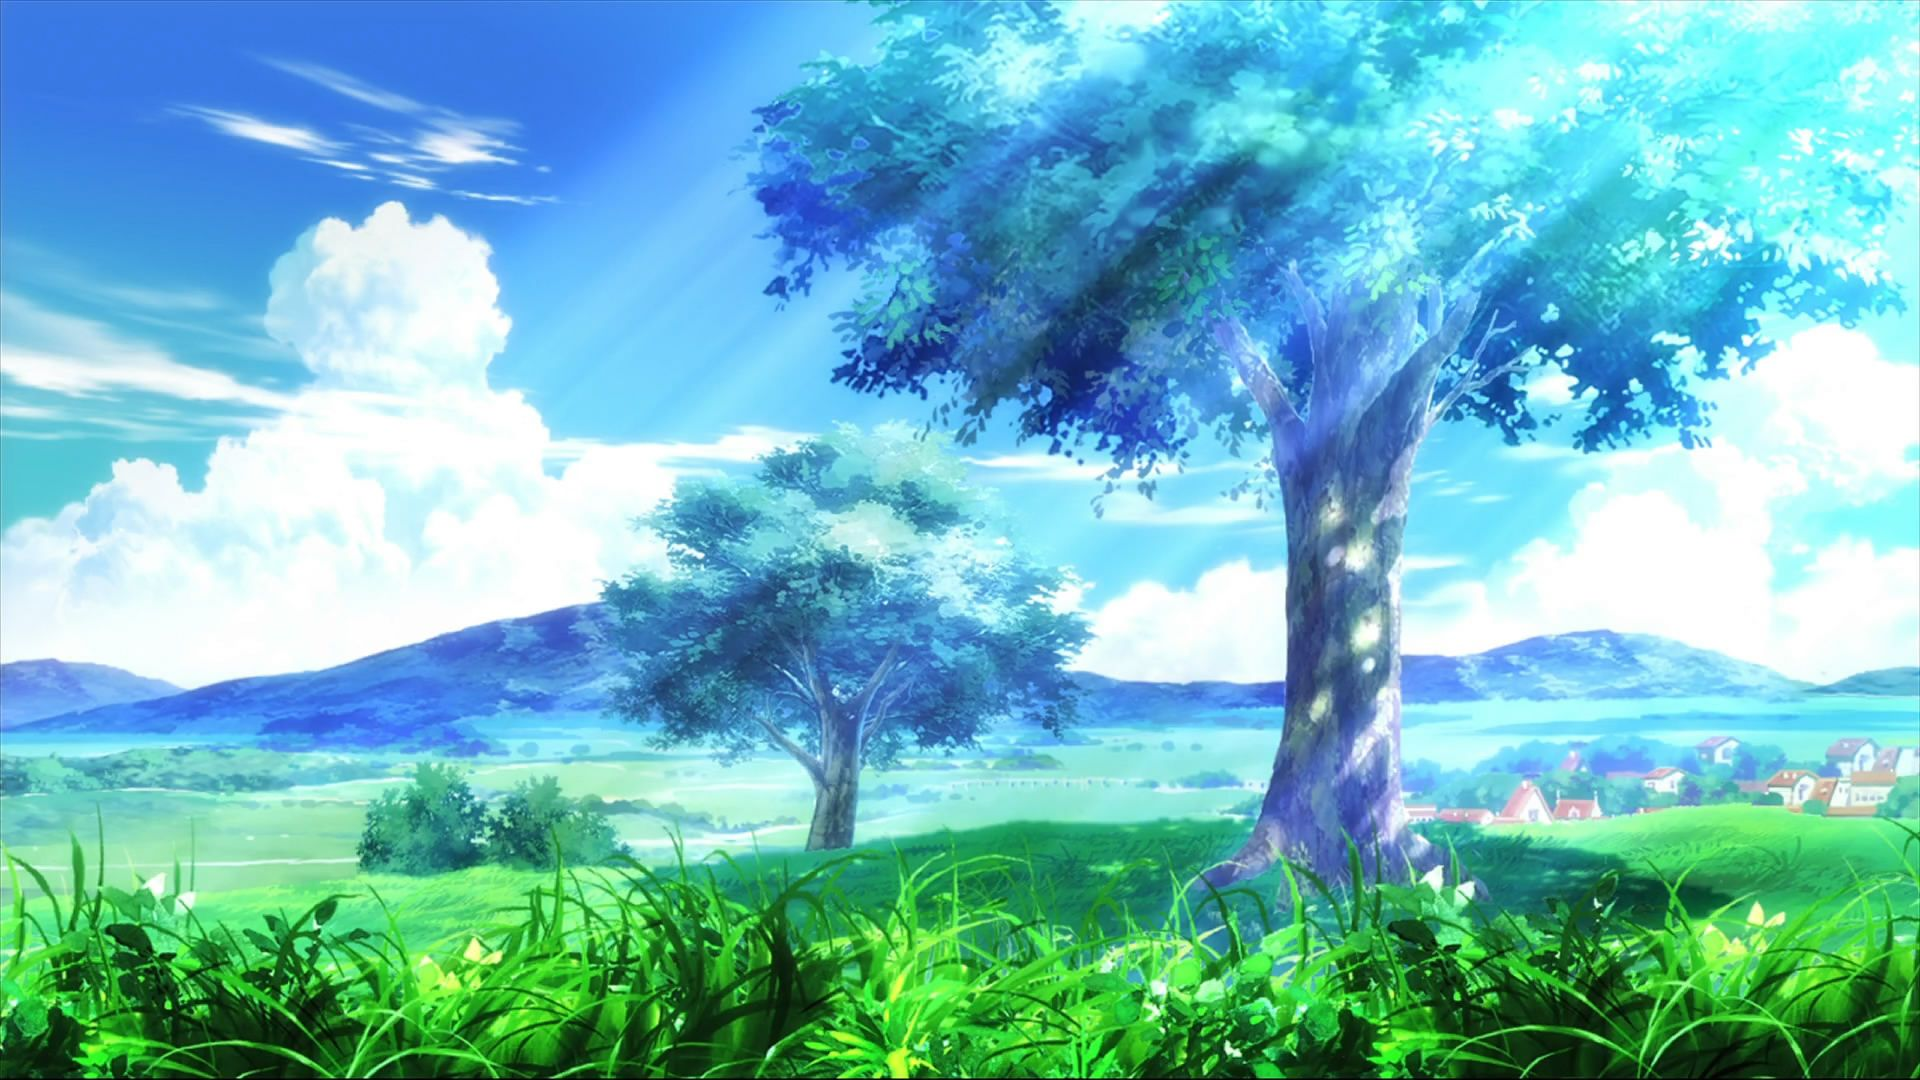 Anime Trees Art Hd Wallpaper Anime Backgrounds Wallpapers Anime Scenery Wallpaper Landscape Wallpaper